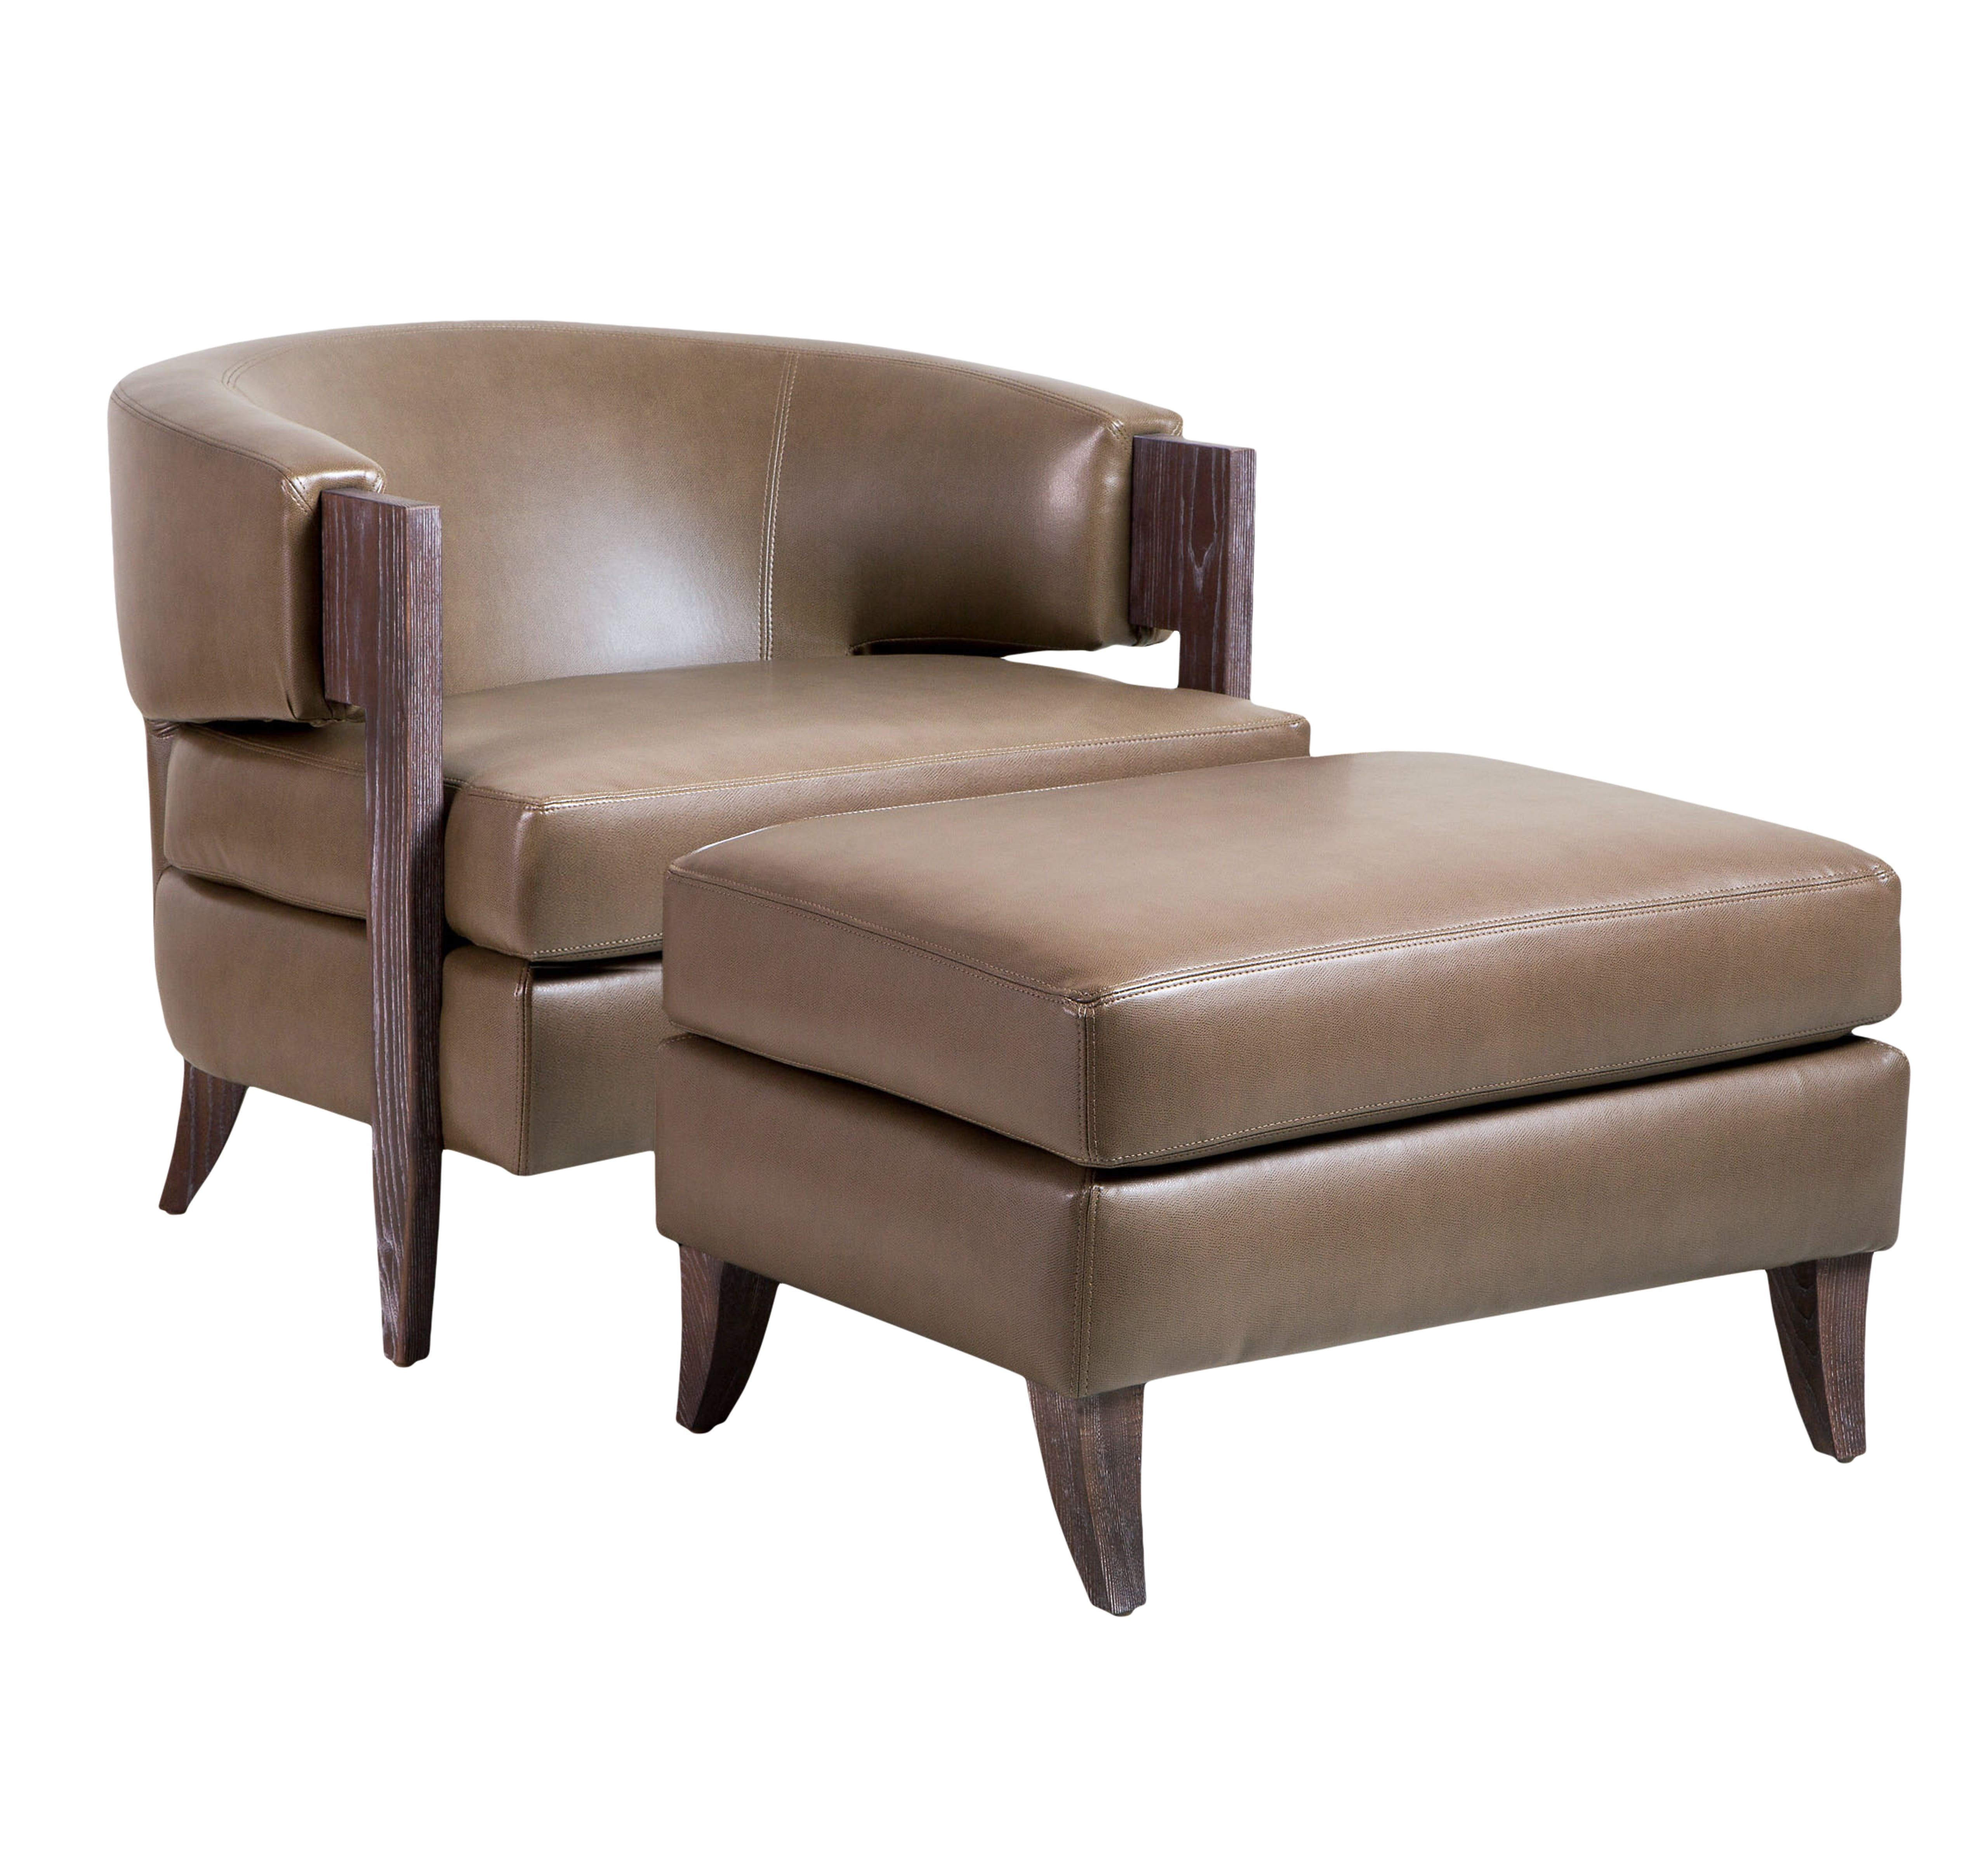 Buy kelsey chair s collection of contemporary transitional mid century